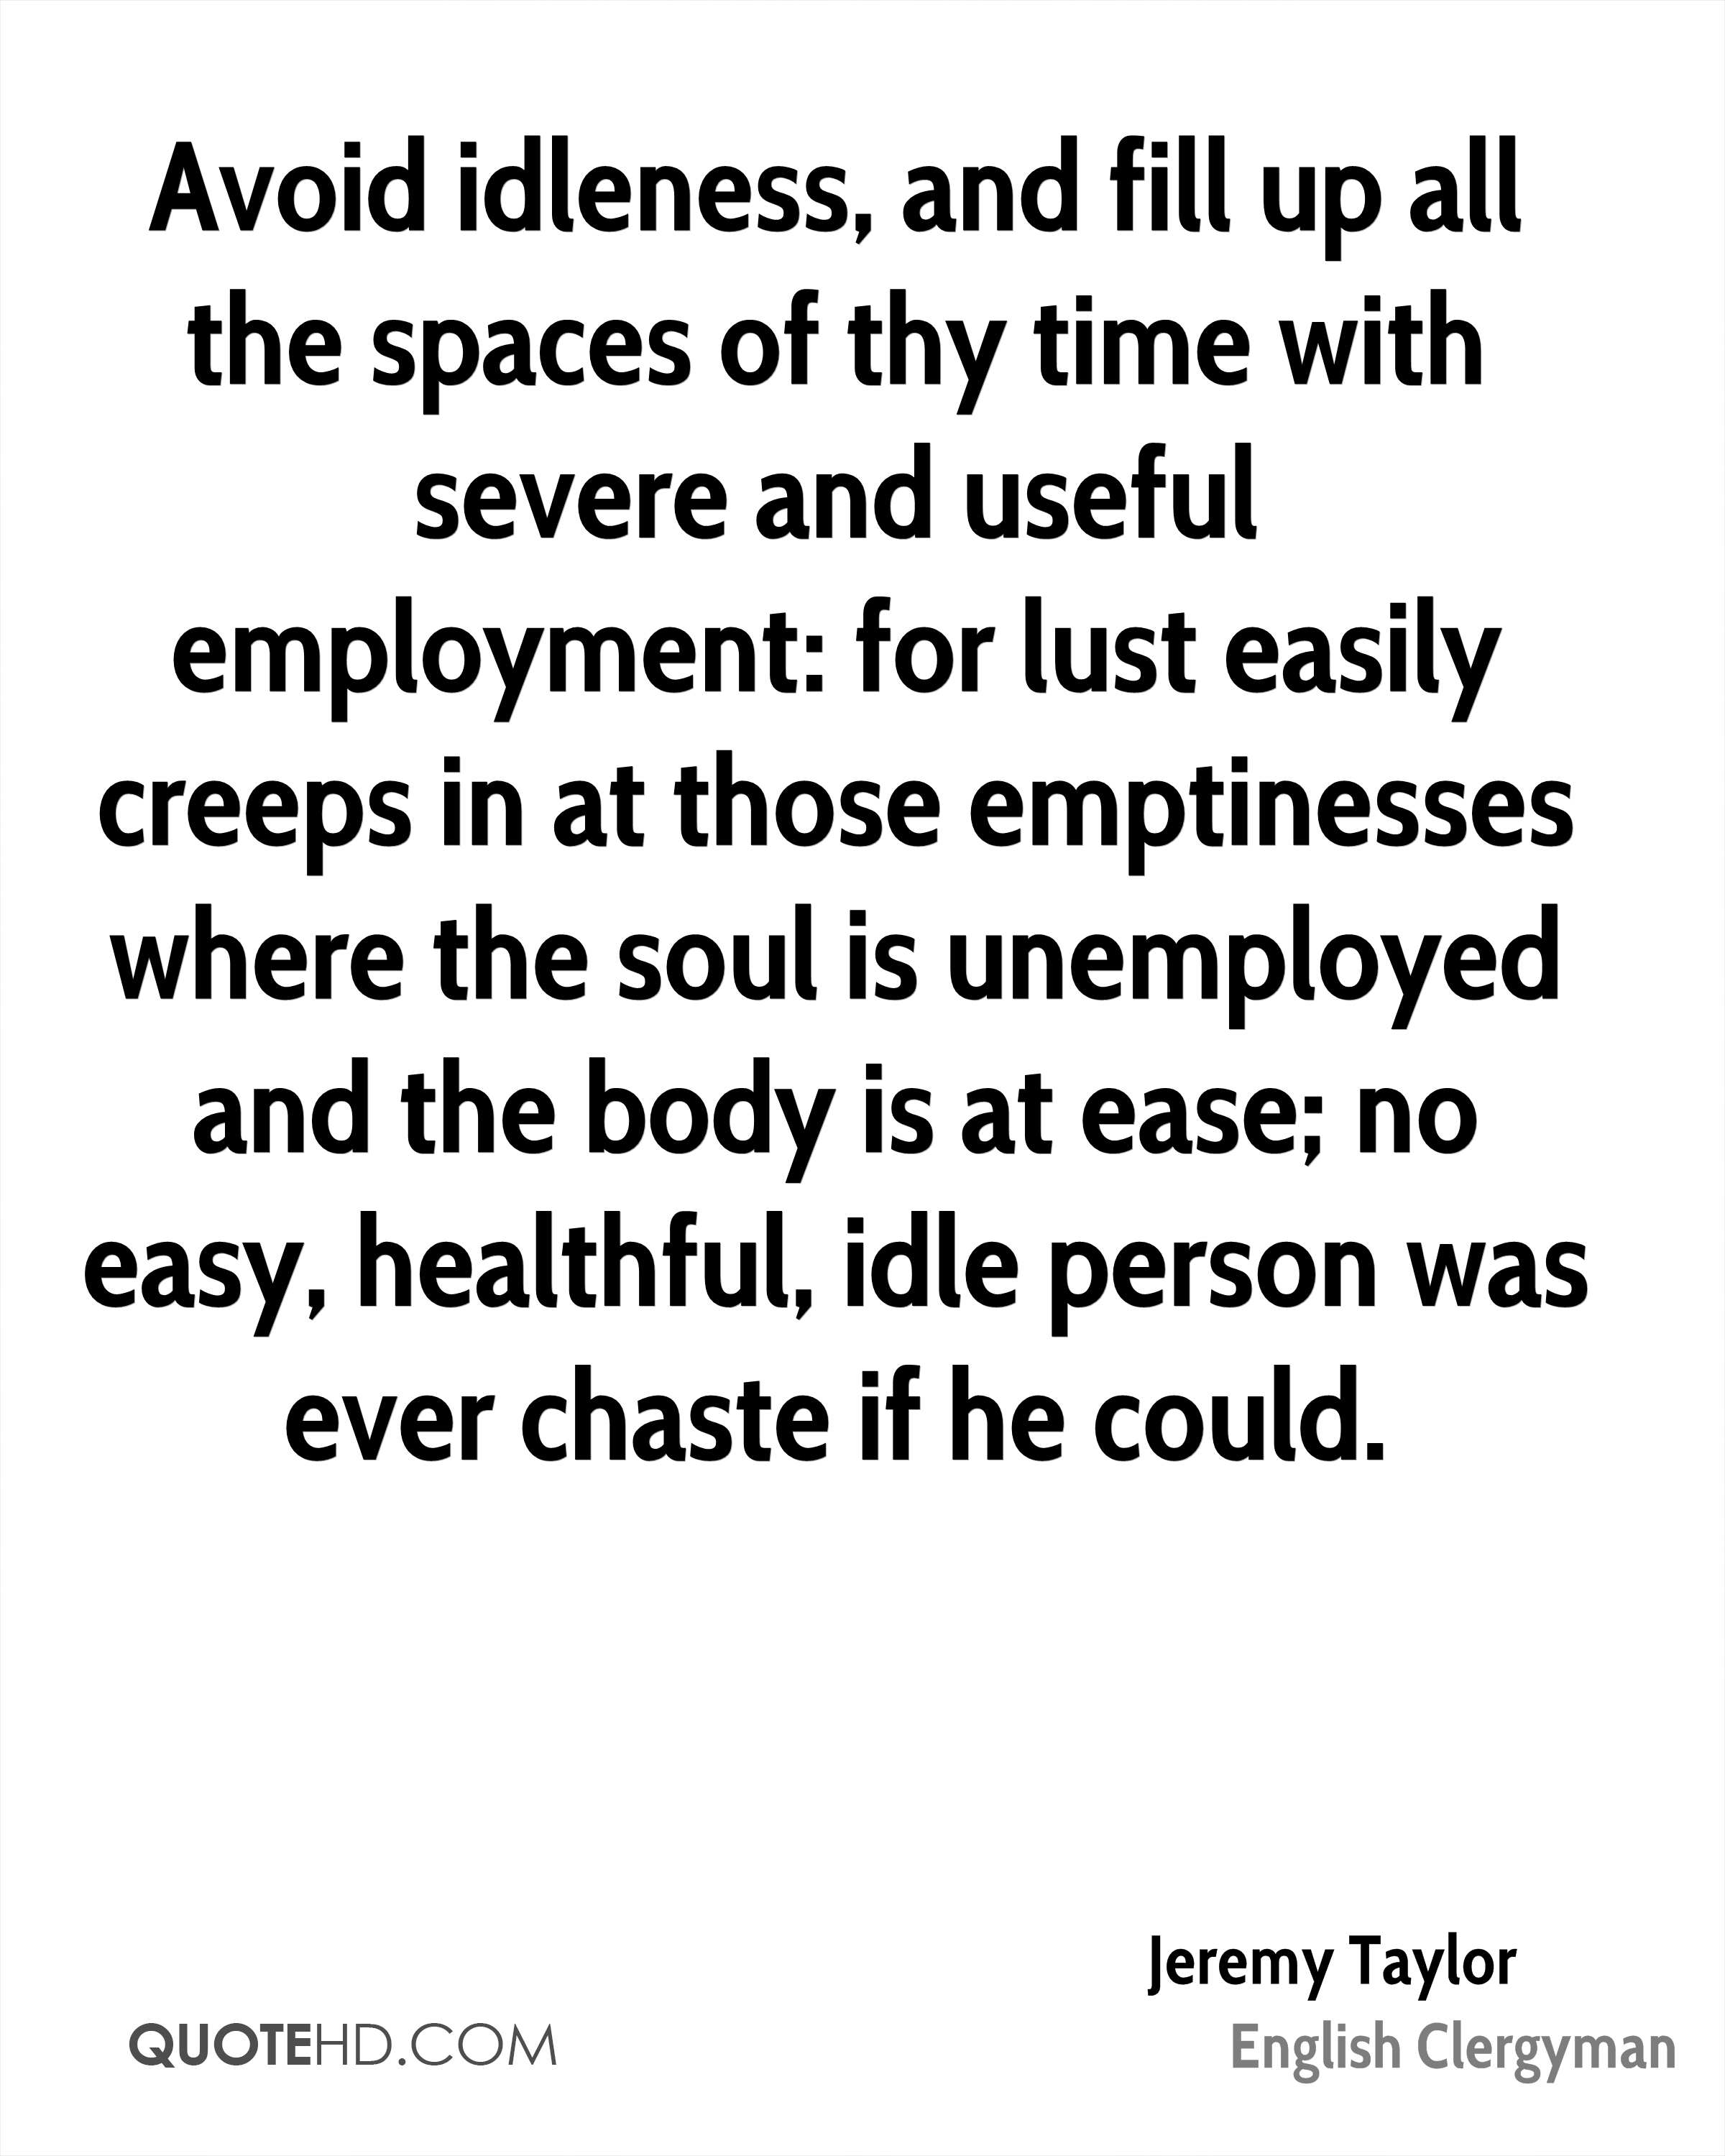 Avoid idleness, and fill up all the spaces of thy time with severe and useful employment: for lust easily creeps in at those emptinesses where the soul is unemployed and the body is at ease; no easy, healthful, idle person was ever chaste if he could.